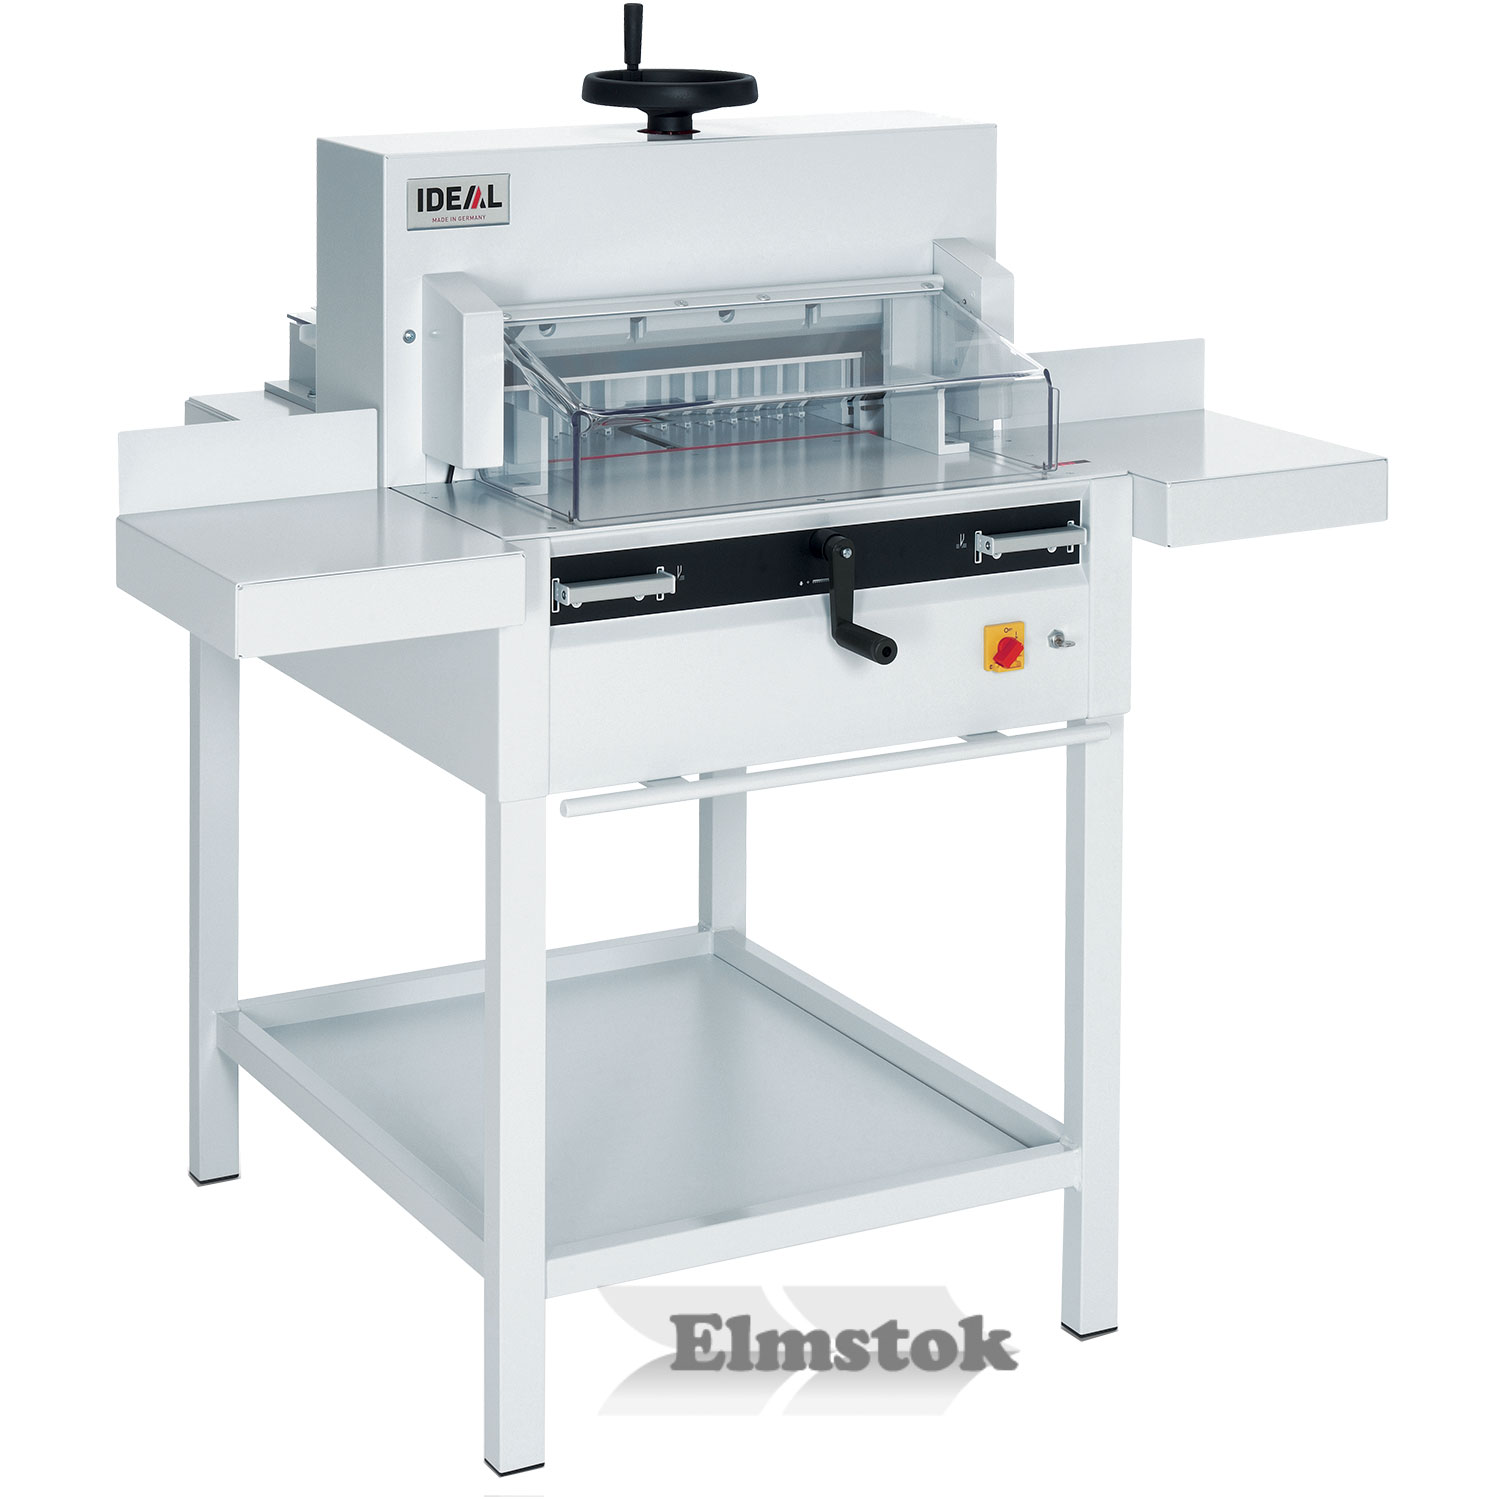 ideal 4815 easy cut electronic guillotine with manual spindle clamp rh elmstok co uk V 4810 White Round Round White Pill 4810 V